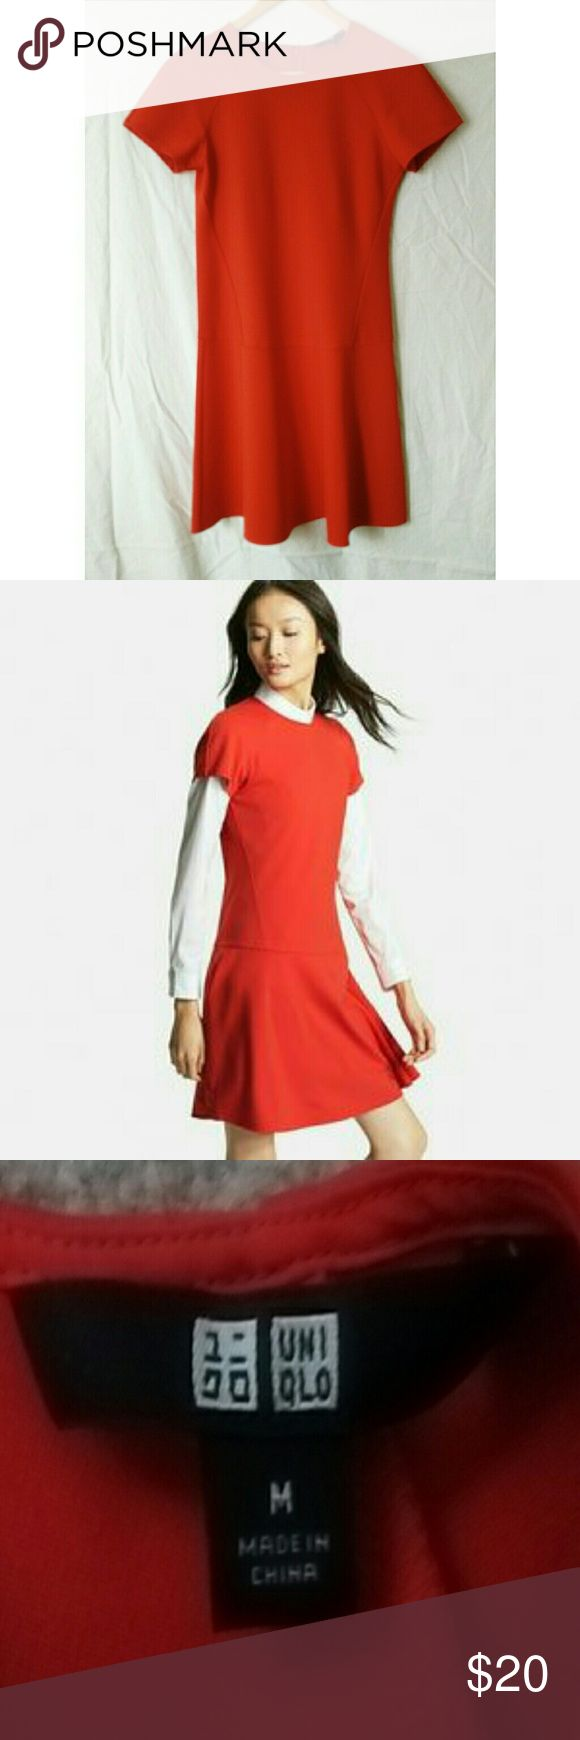 Uniqlo red skater dress size medium Nice heavier weight fabric. Only worn once. 33 1/4 inches long. Zipper up back. Uniqlo Dresses Mini